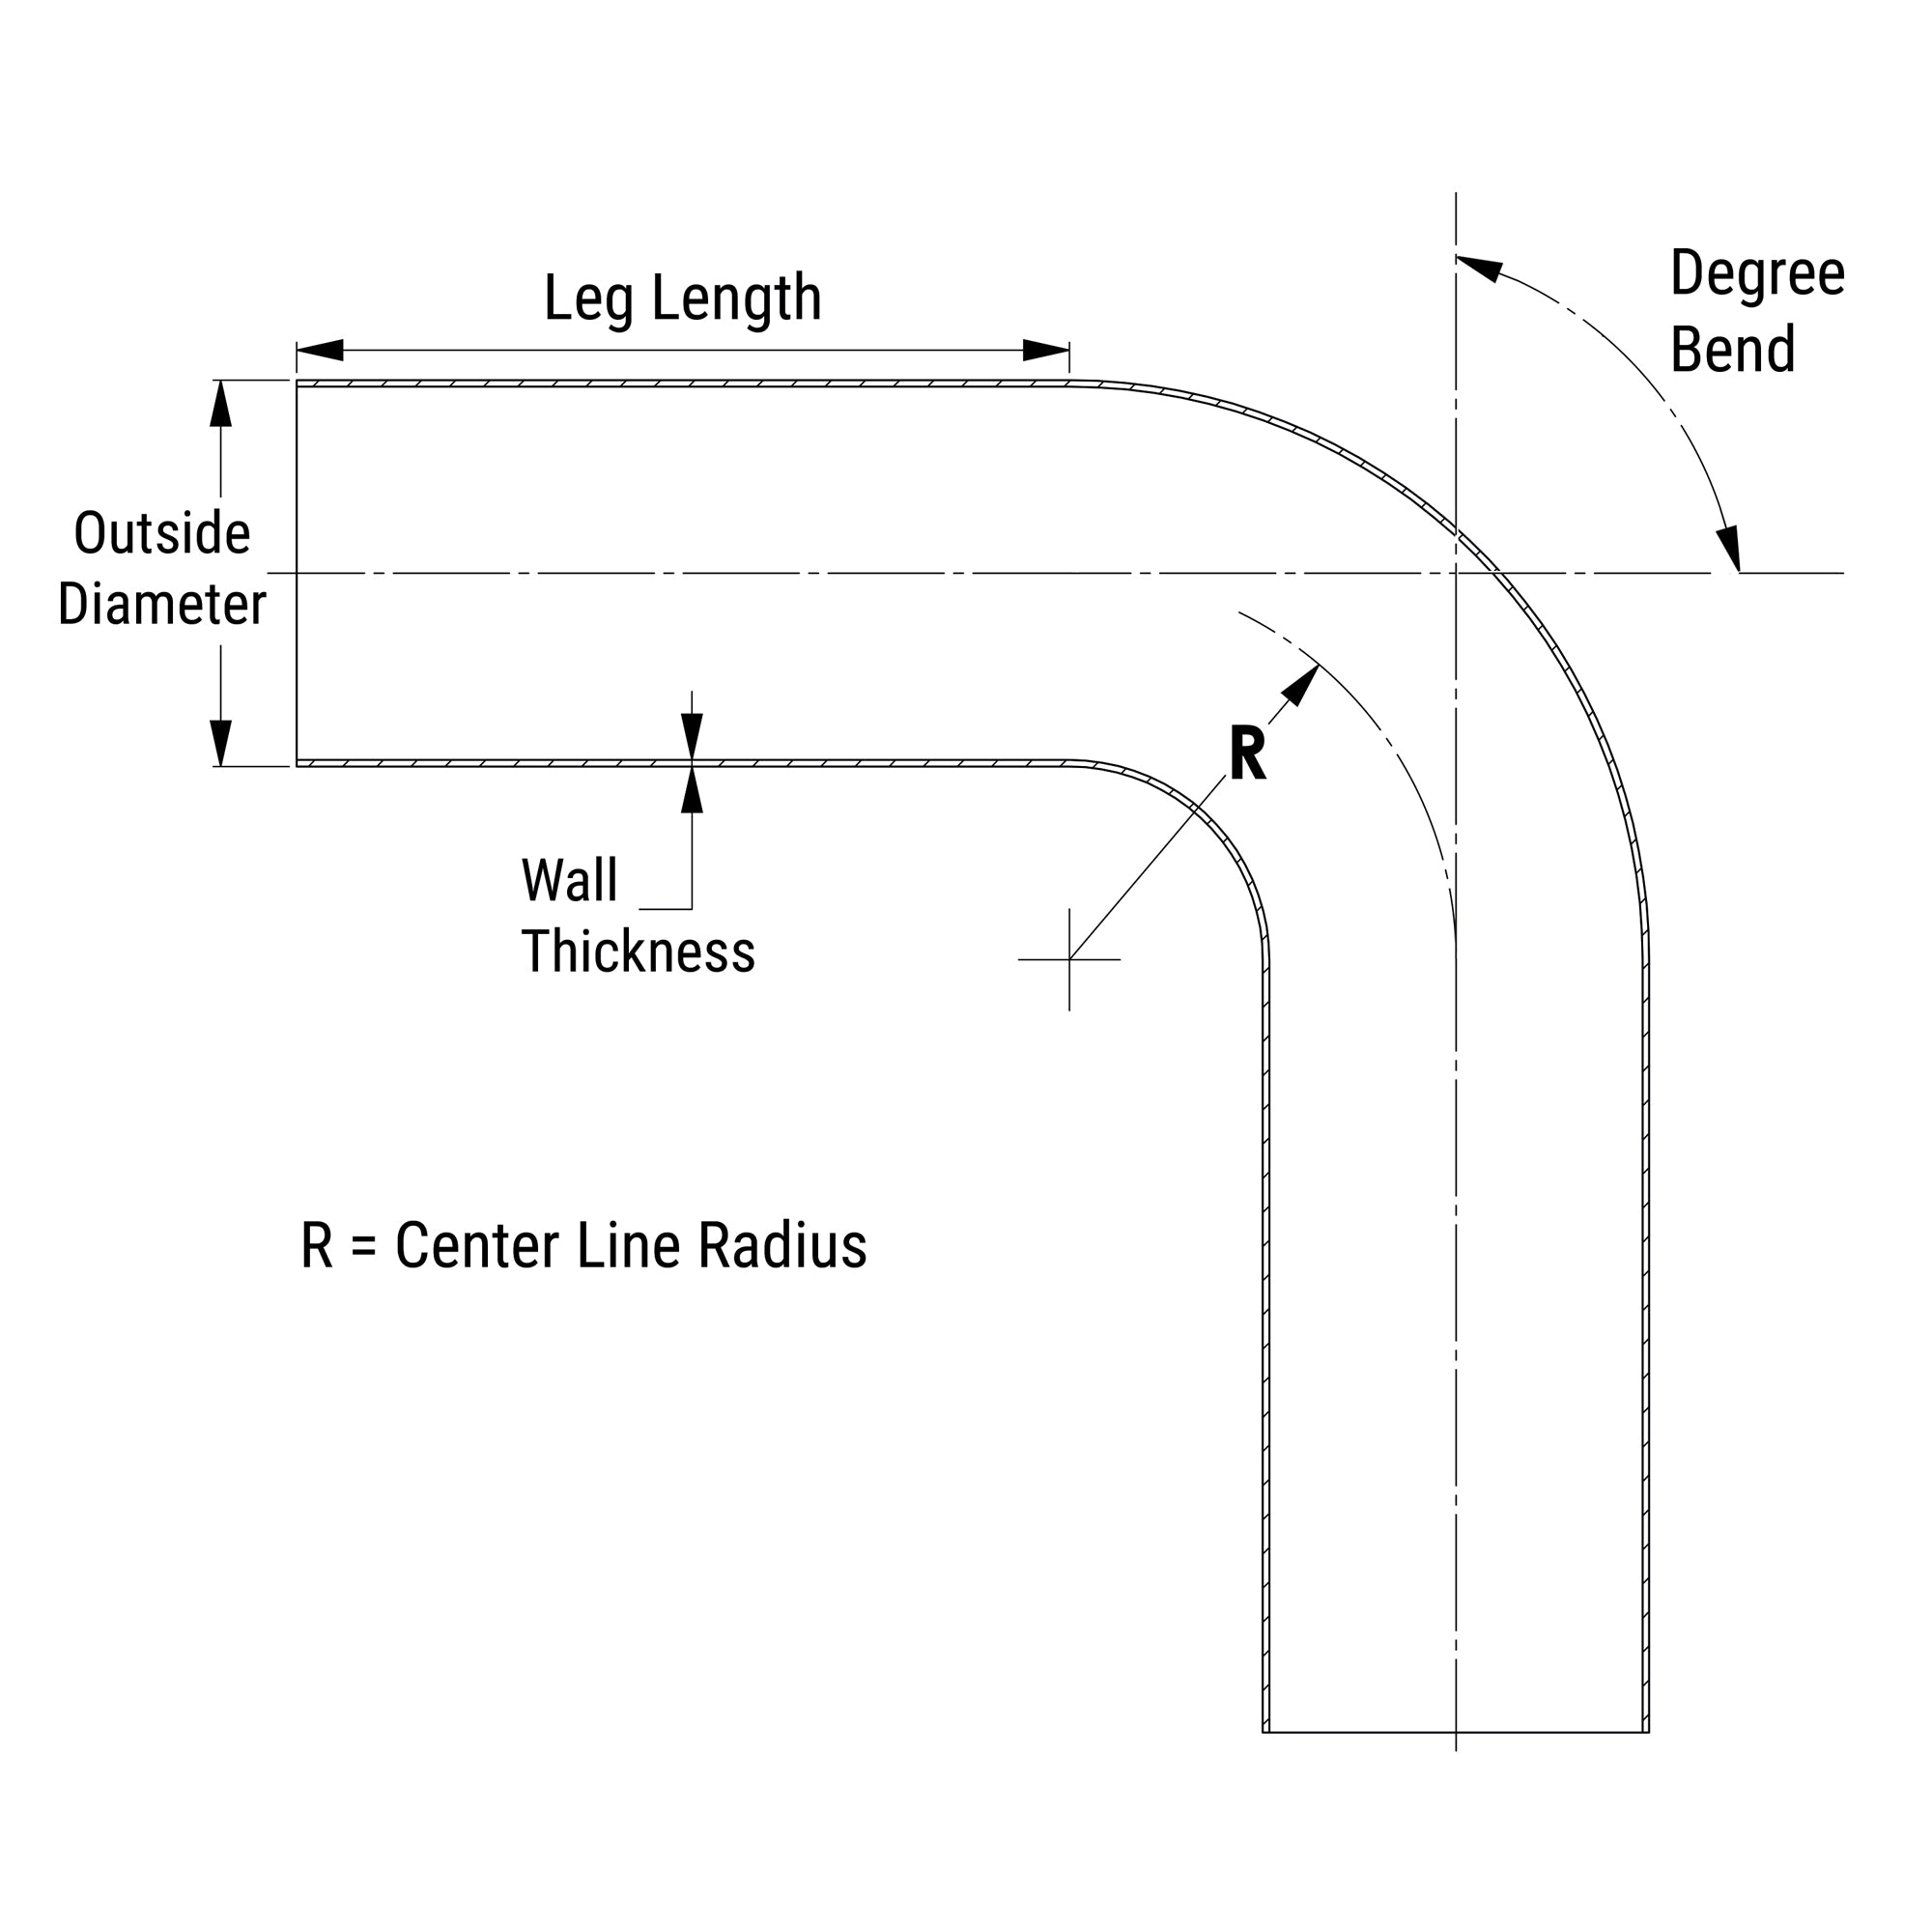 4.5 OD 6 Center Line Radius 0.079 Wall Thickness HPS AT90-450-CLR-6 6061 T6 Aluminum Elbow Pipe Tubing 90 Degree Bend 12 Gauge